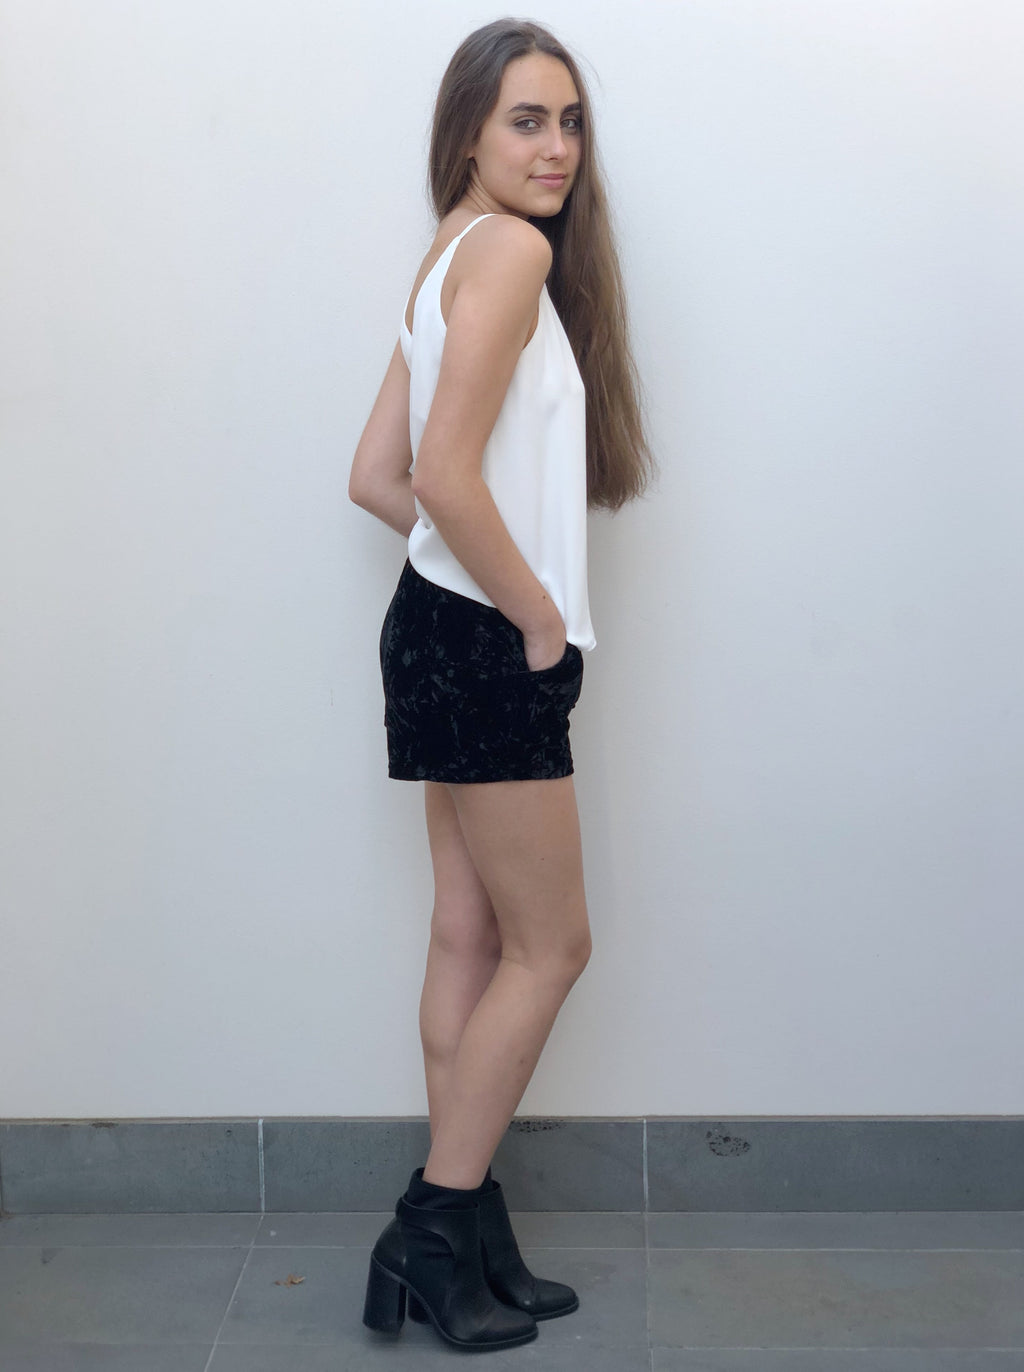 Black velvet shorts are flattering and feature pockets and an elastic waist.